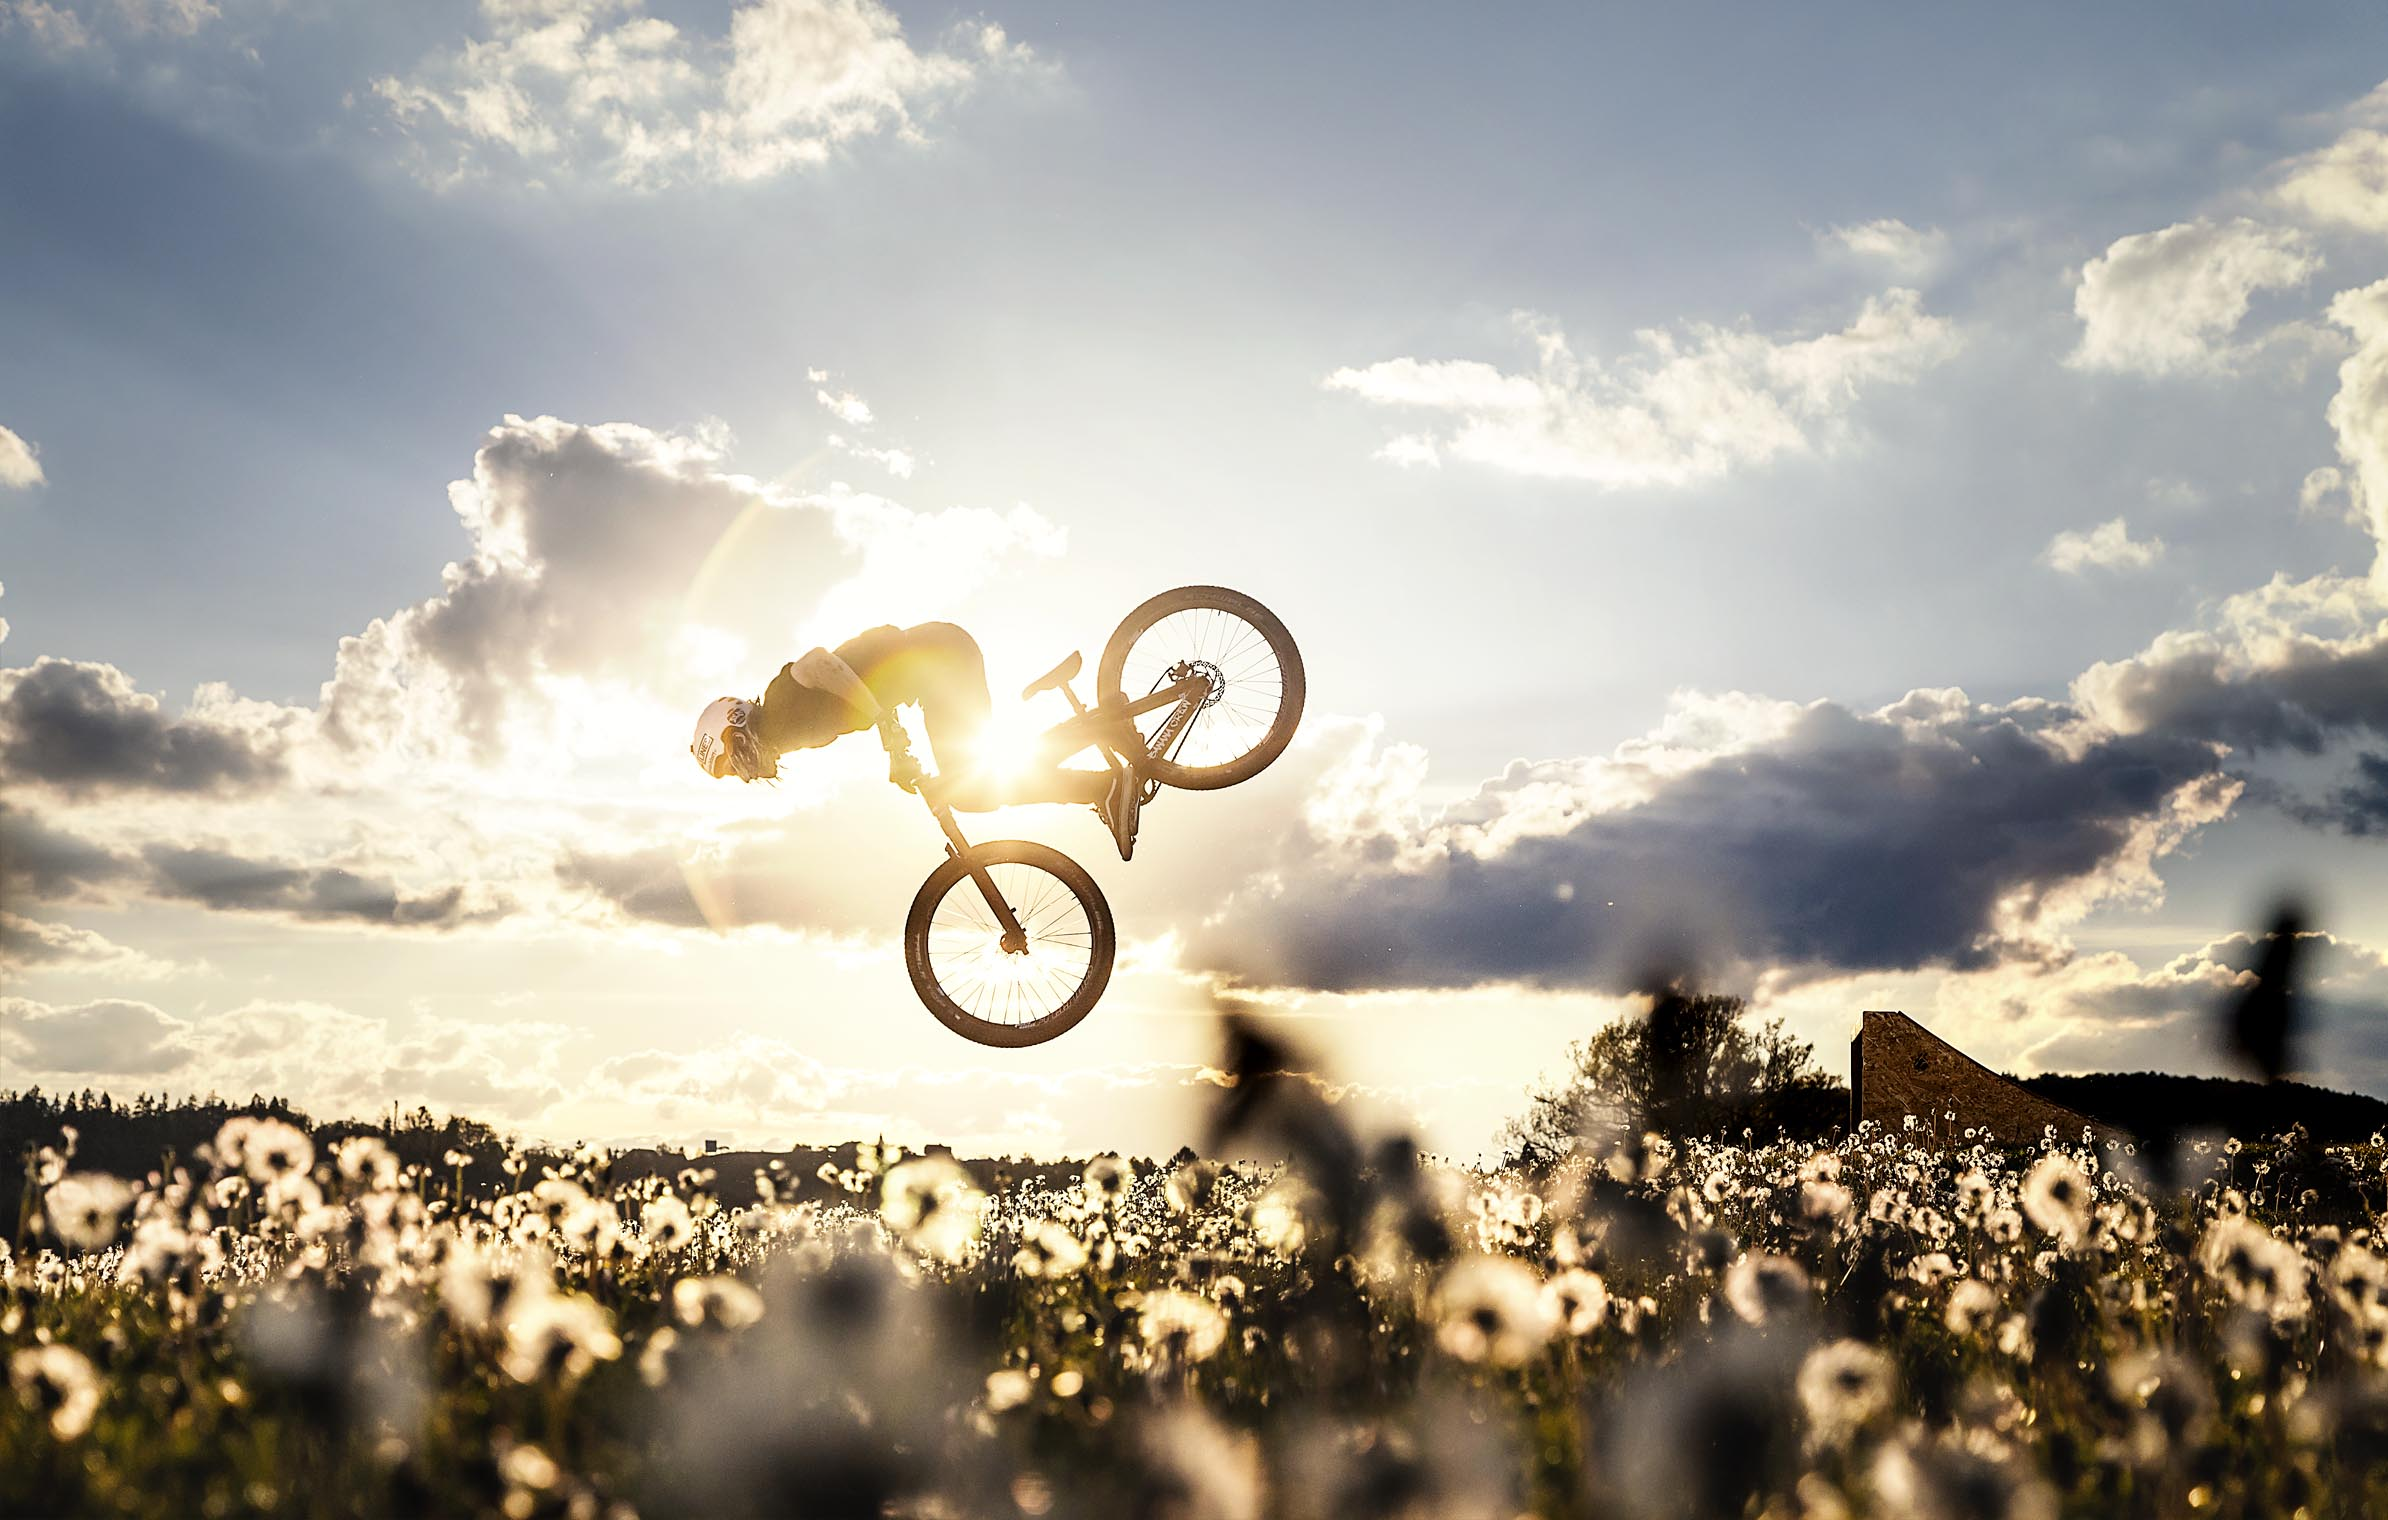 mtb_print_porn_golf_course_bernd_winkler_backflip_meadow_dandelions